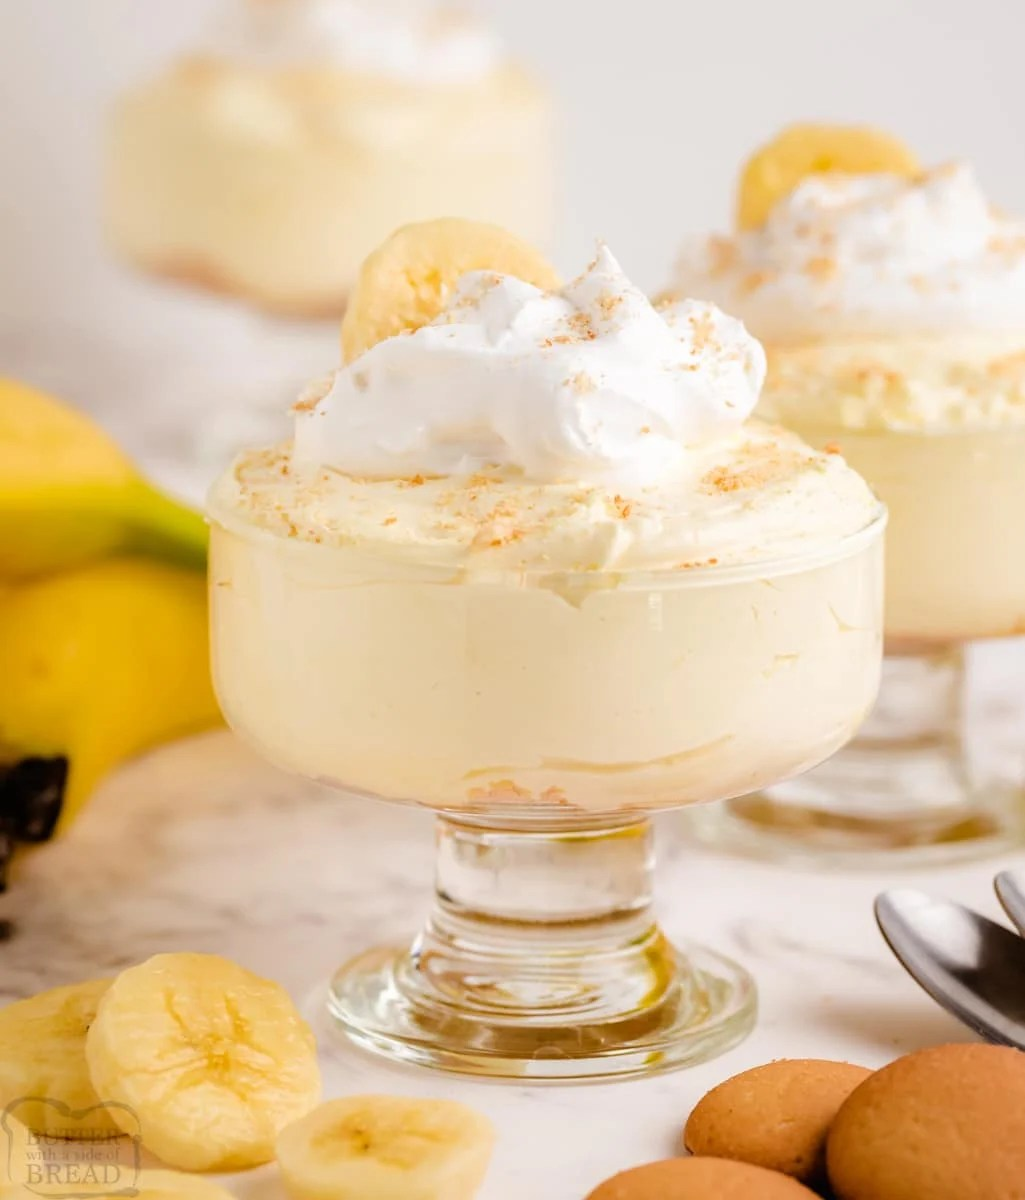 banana cheesecake in a small glass bowl with sliced bananas